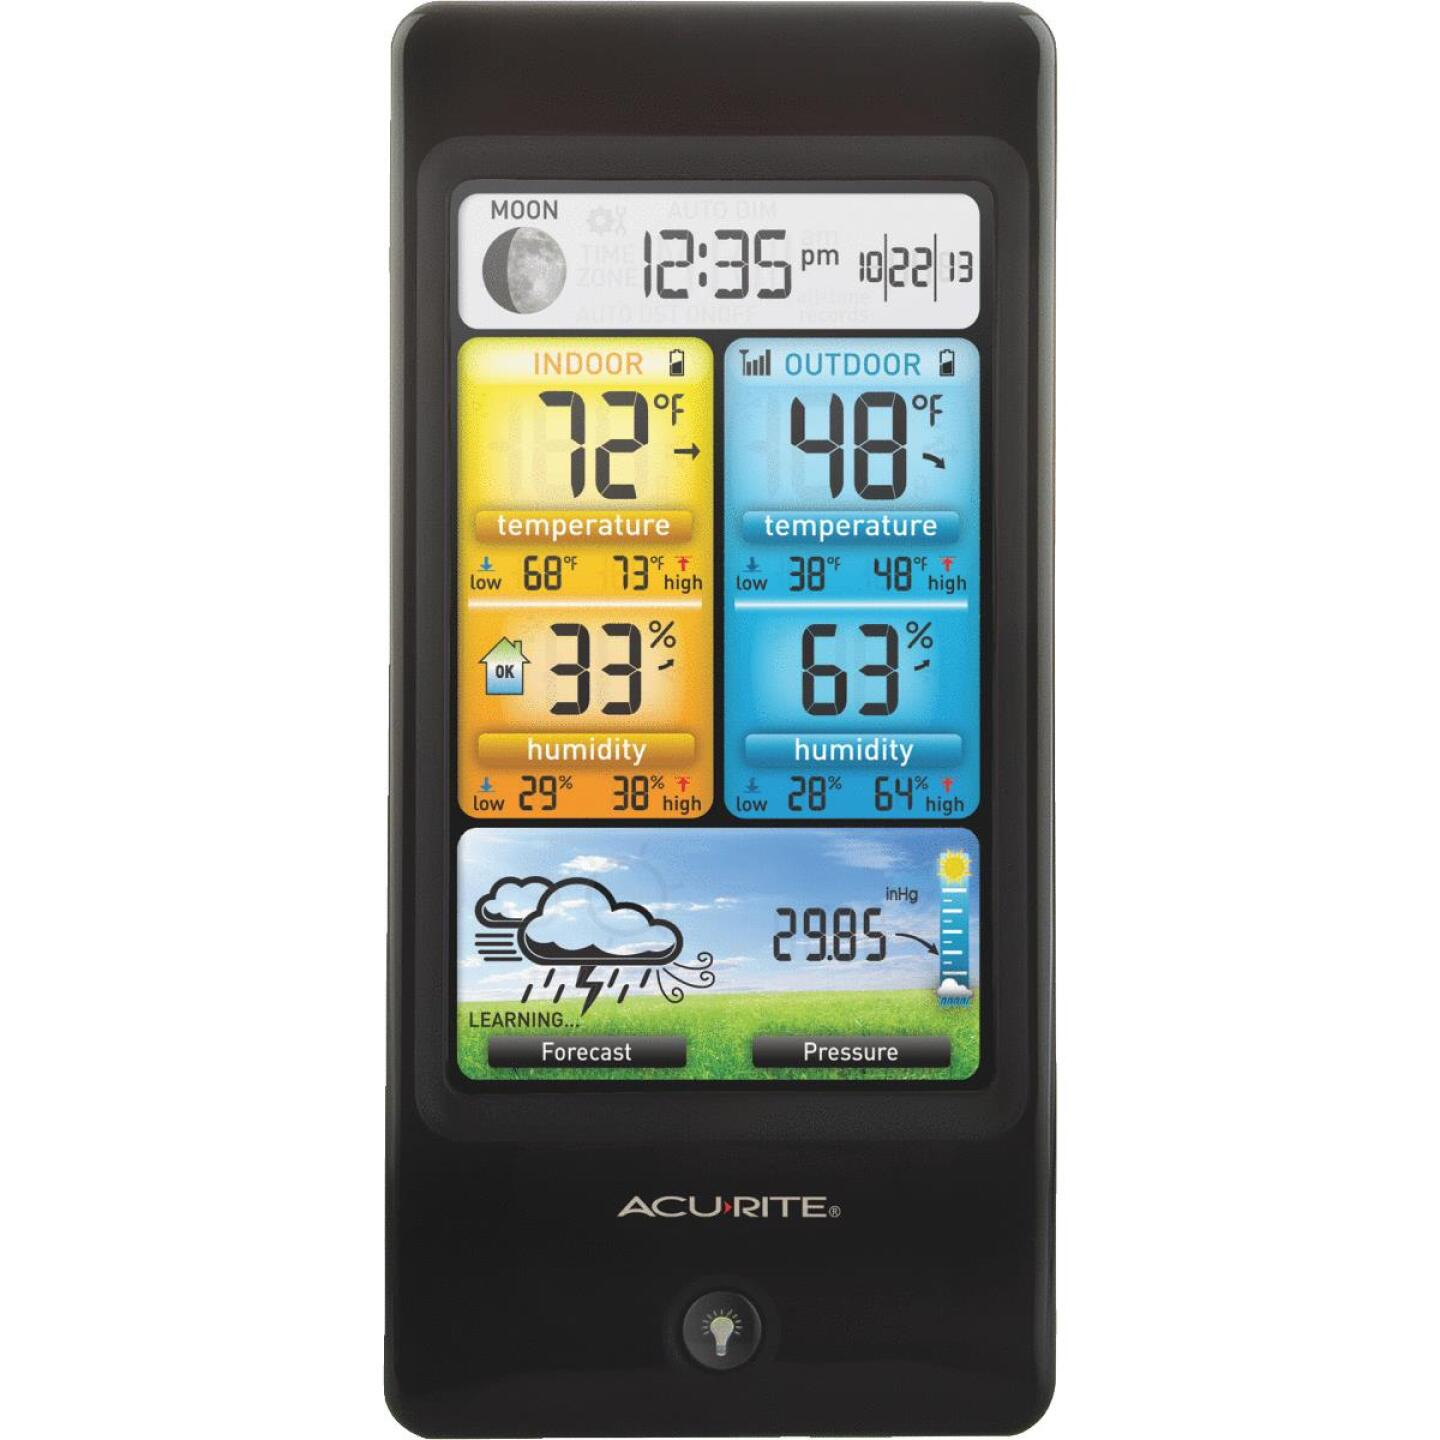 Acu-Rite Color Weather Station Image 6